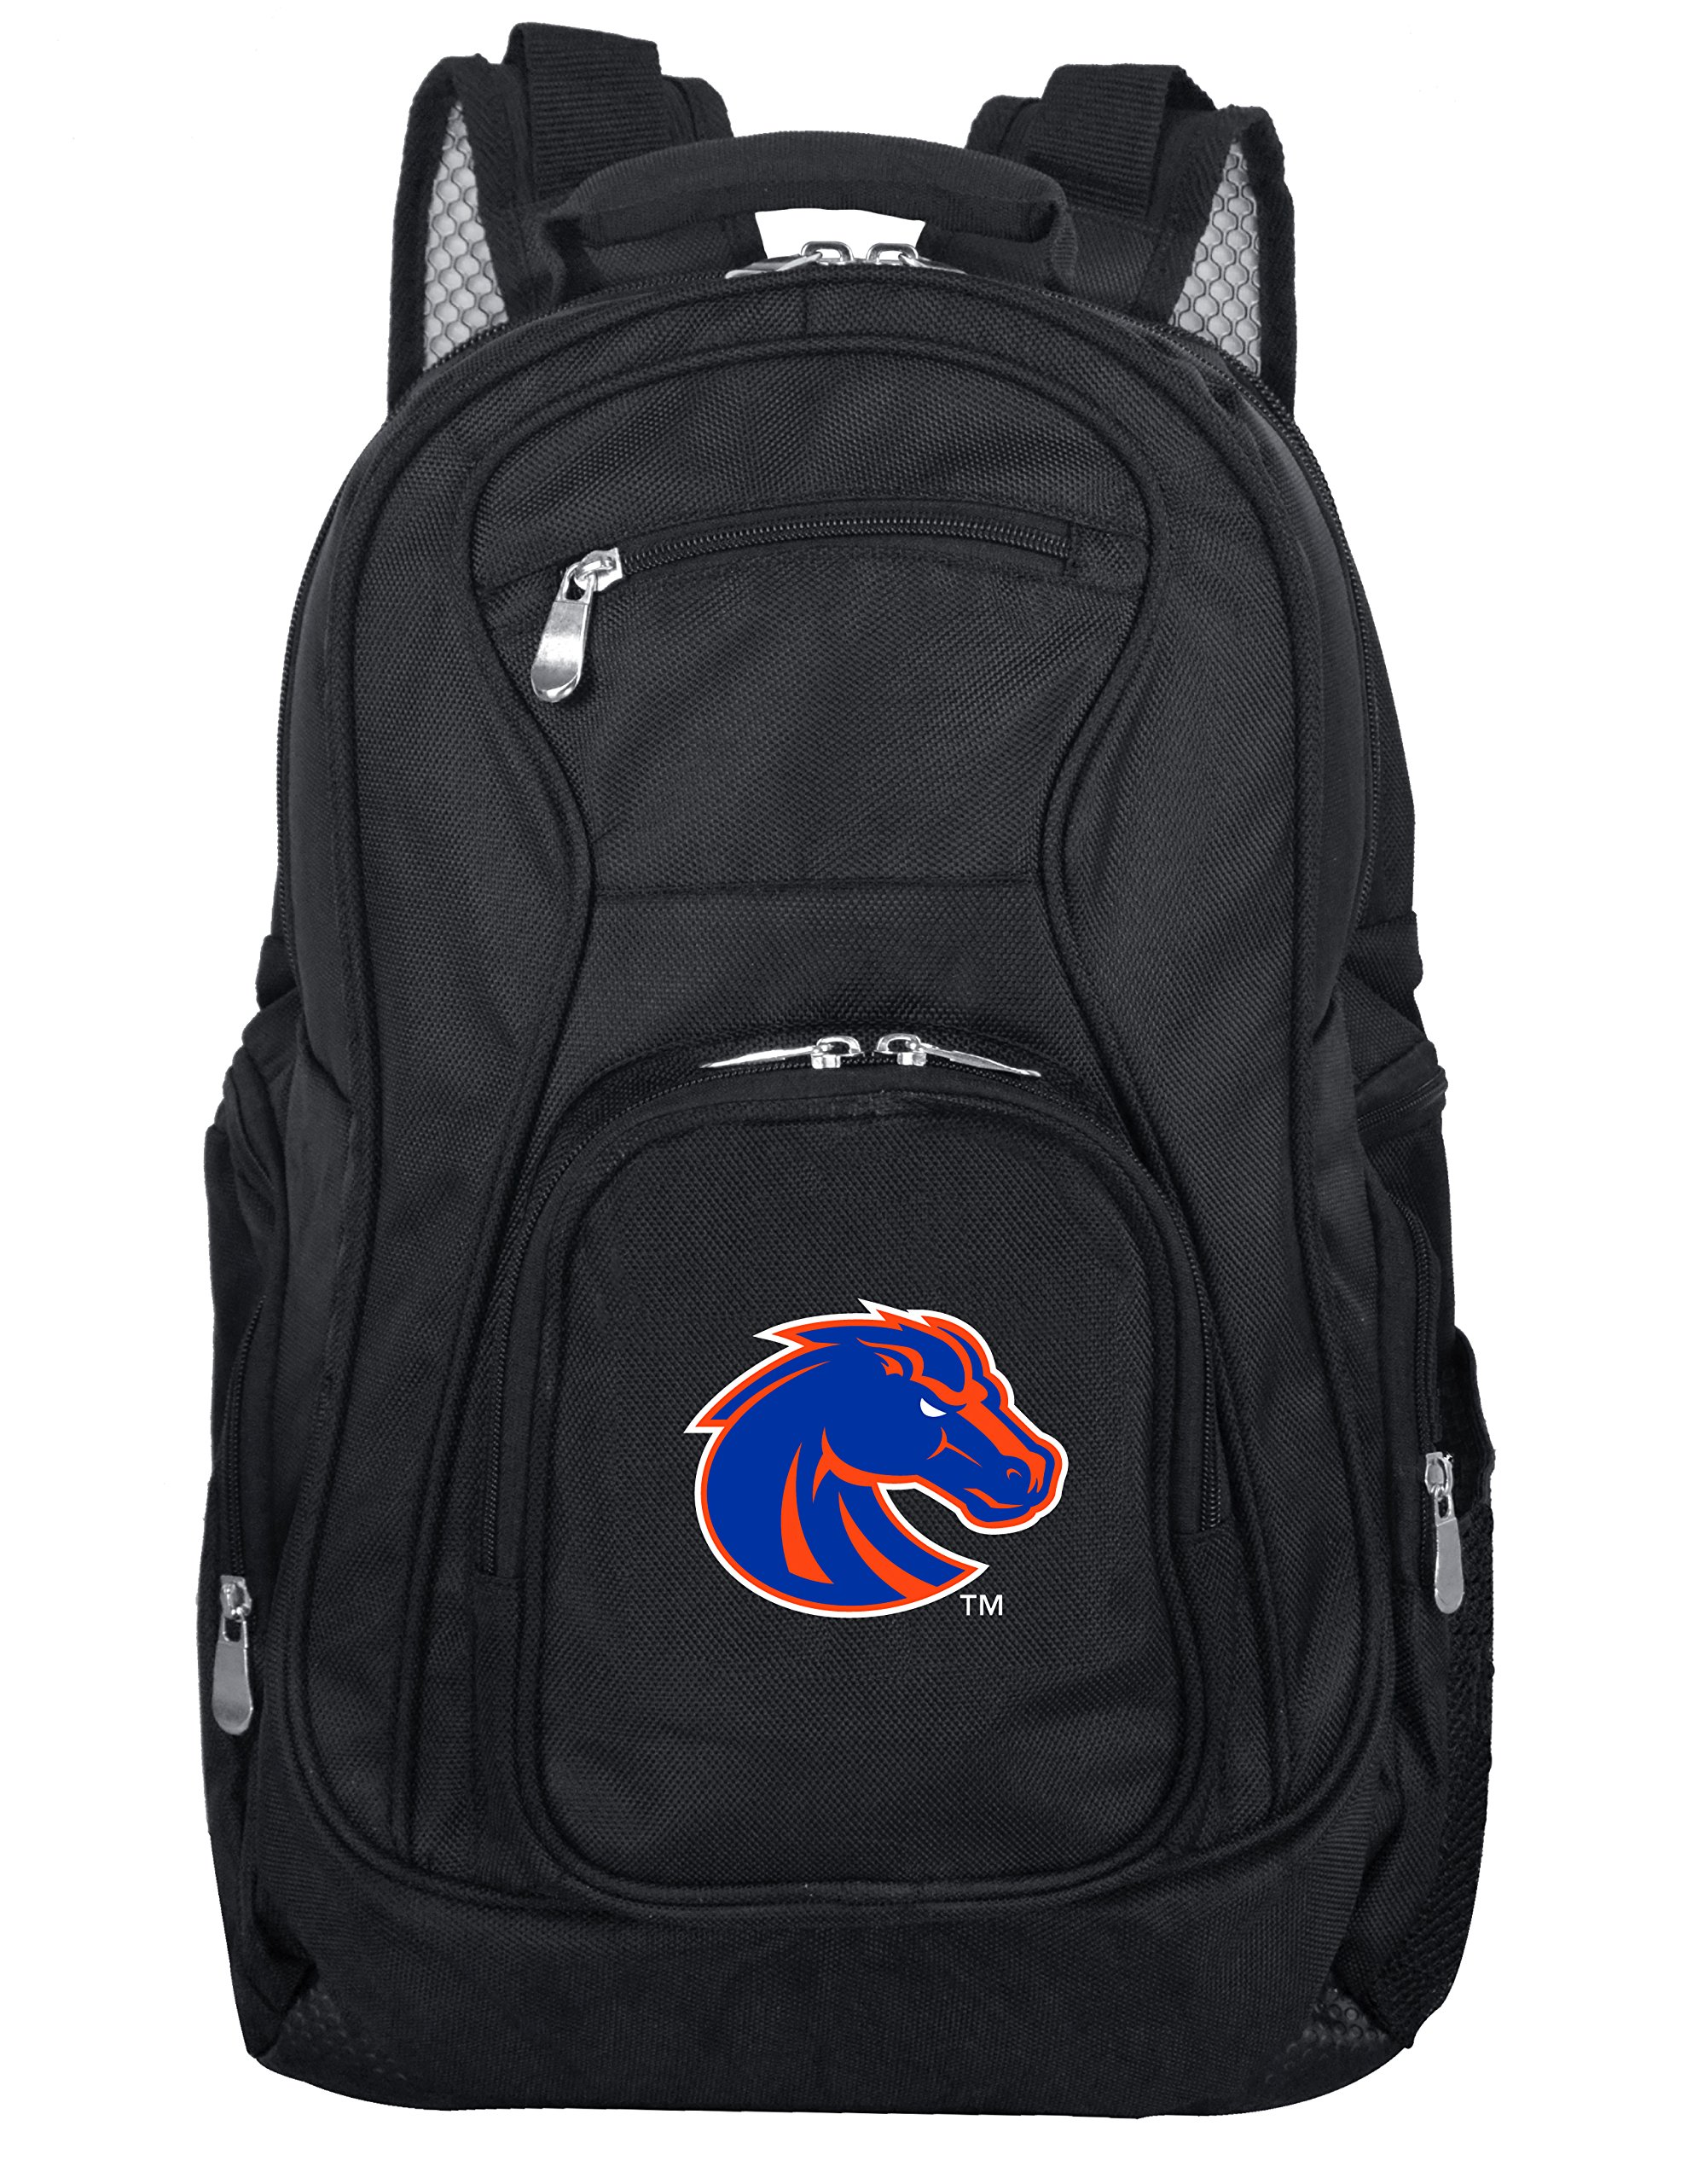 Denco NCAA Boise State Broncos Voyager Laptop Backpack, 19-inches, Black